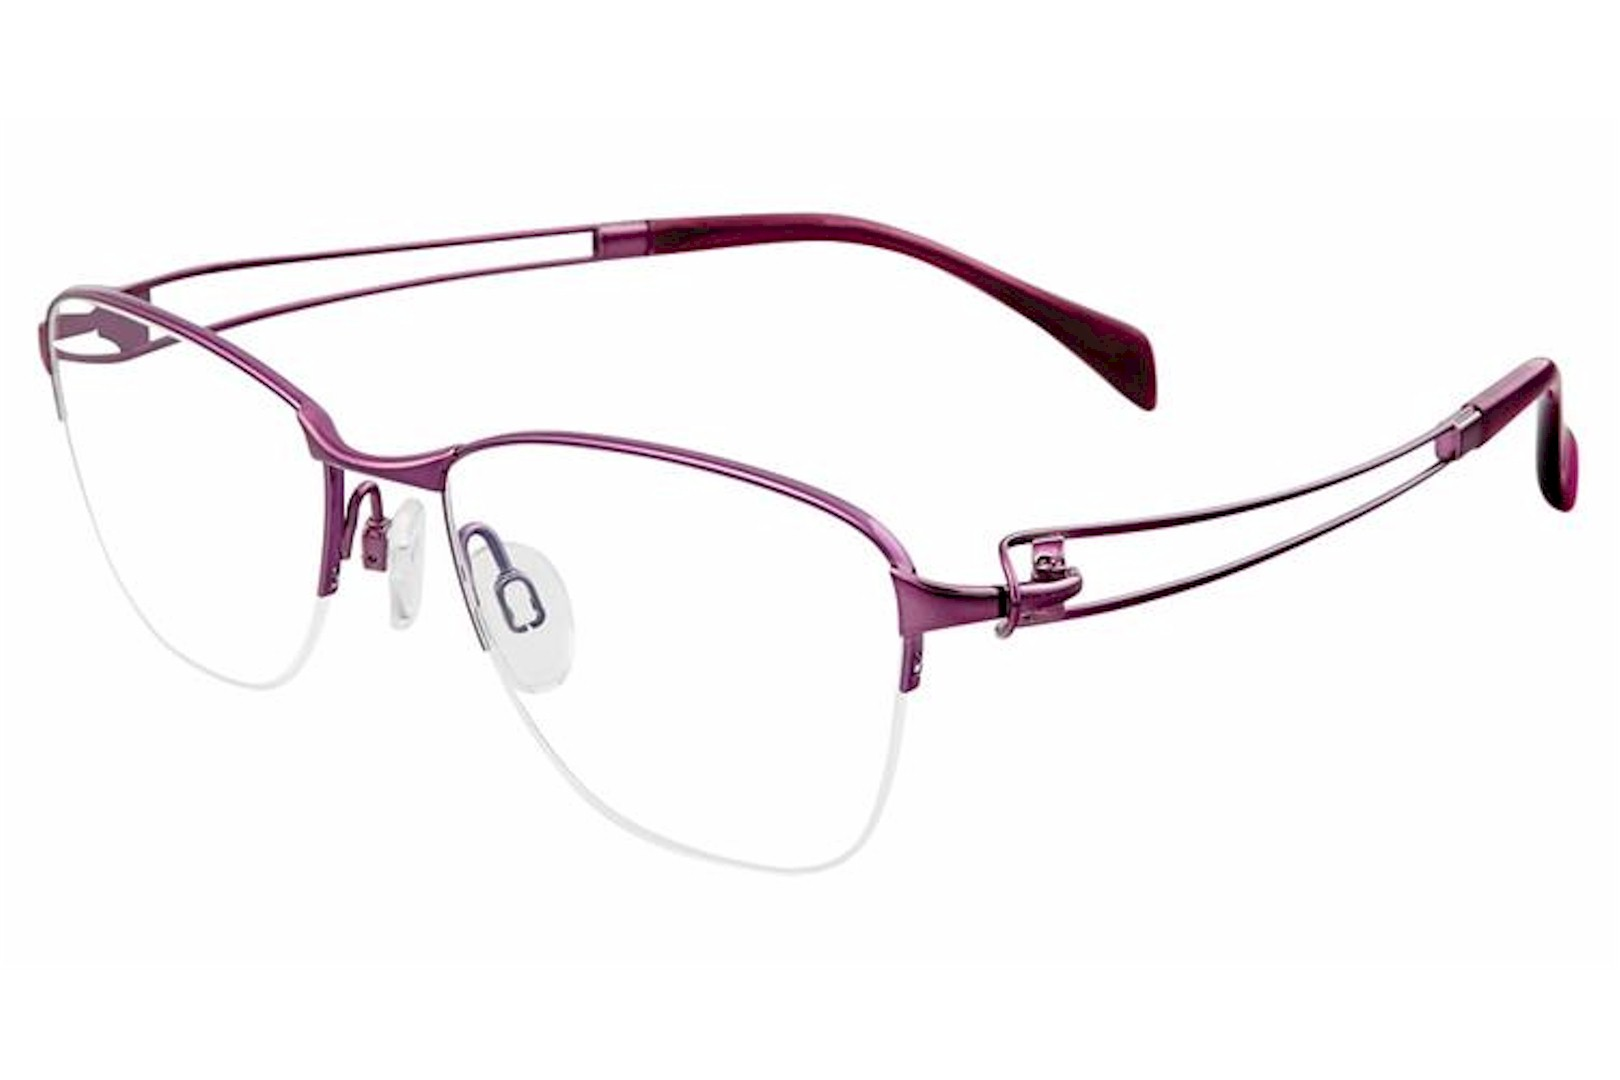 Charmant Eyeglass Frames Titanium Line Art XL 2118 PU Purple Women ...